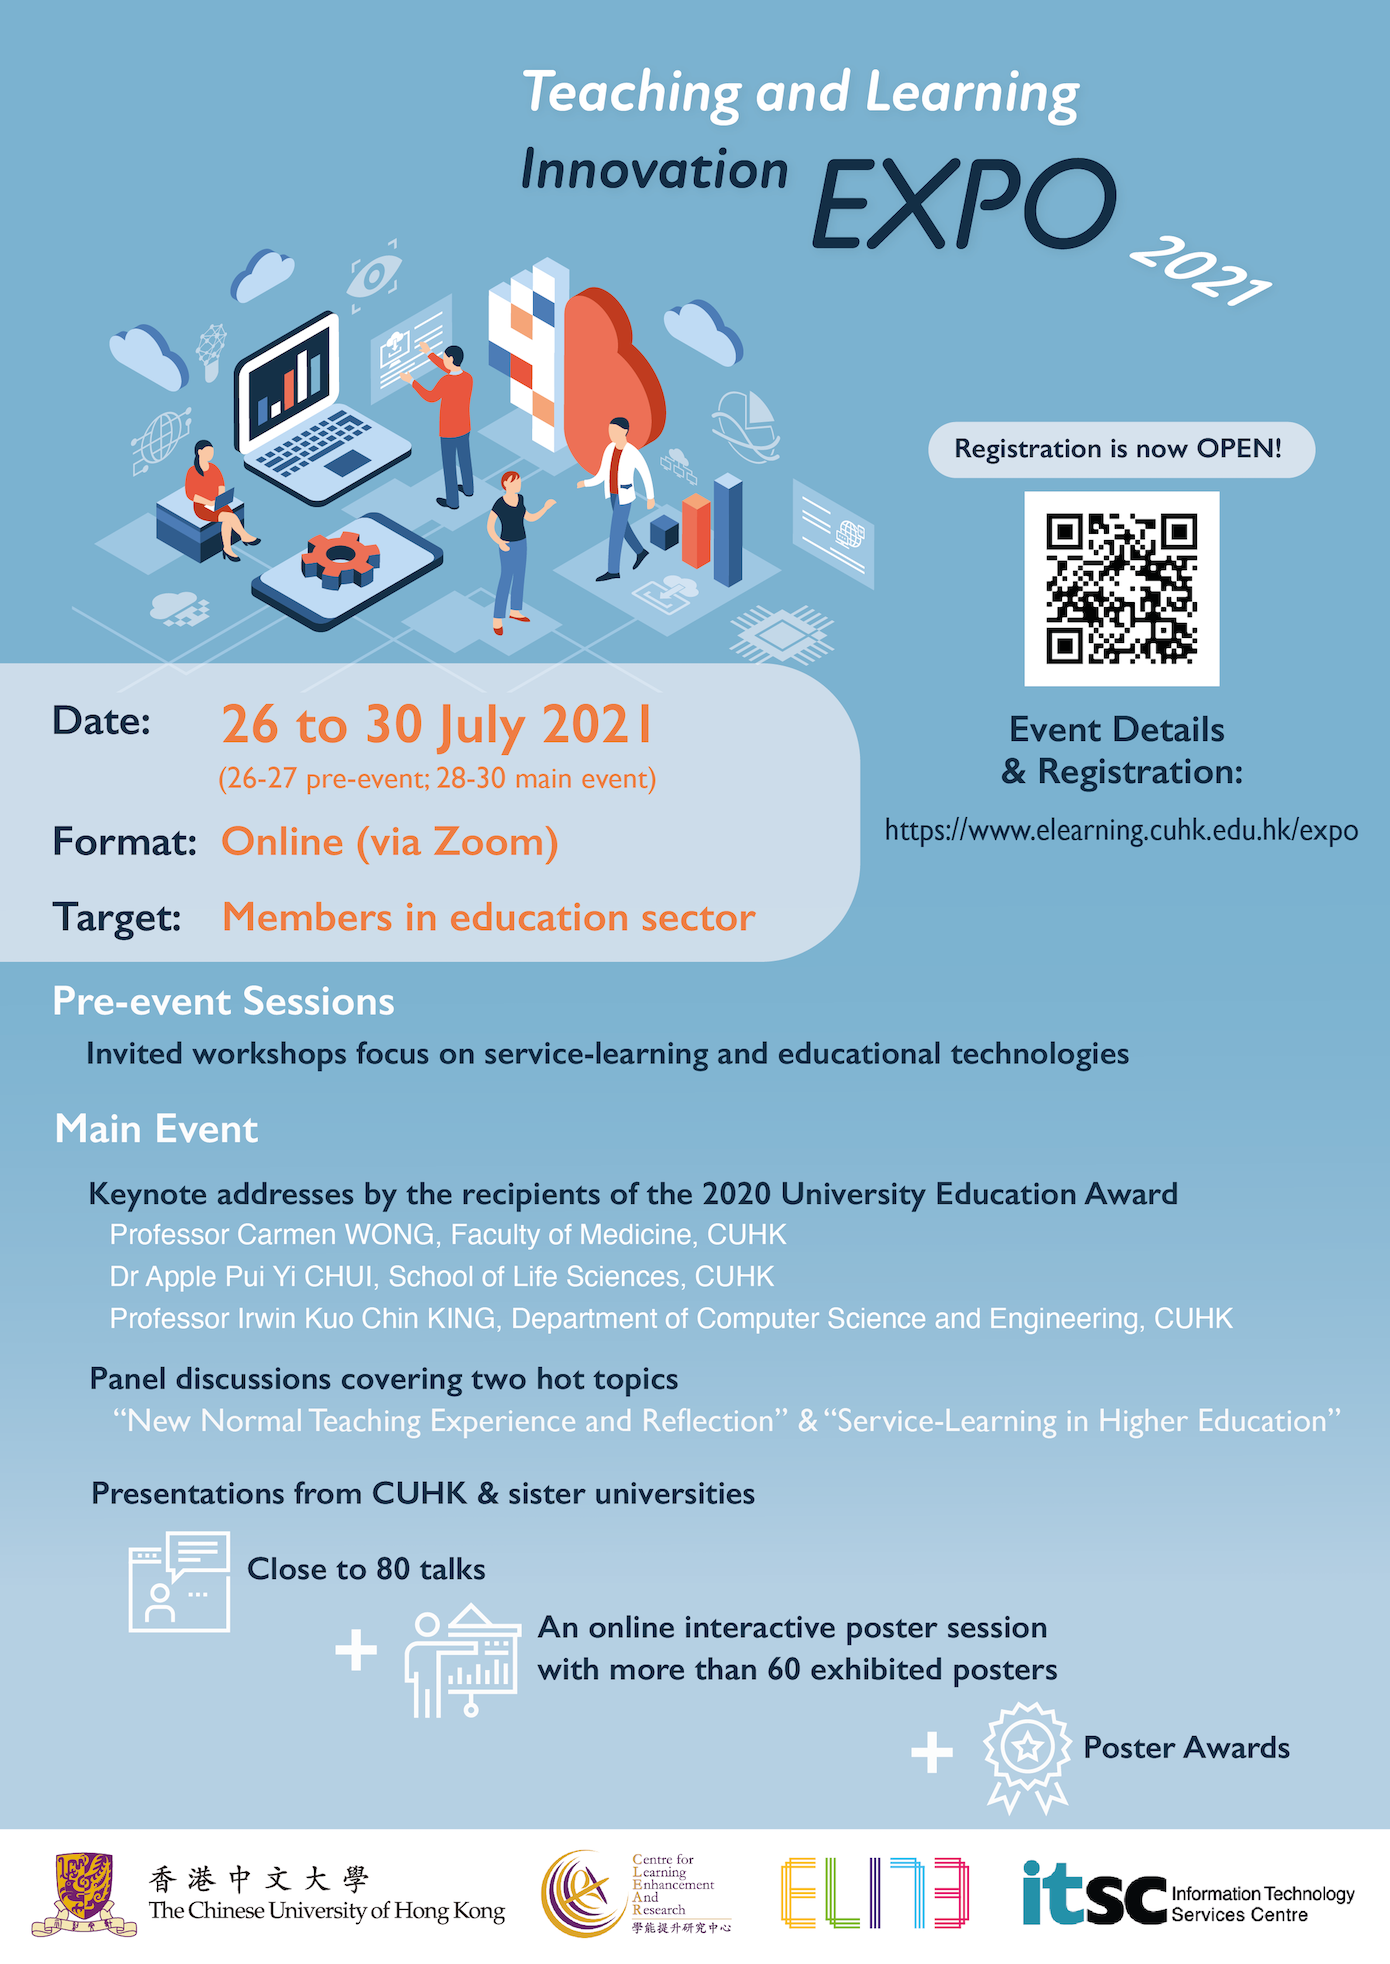 Teaching and Learning Innovation Expo 2021